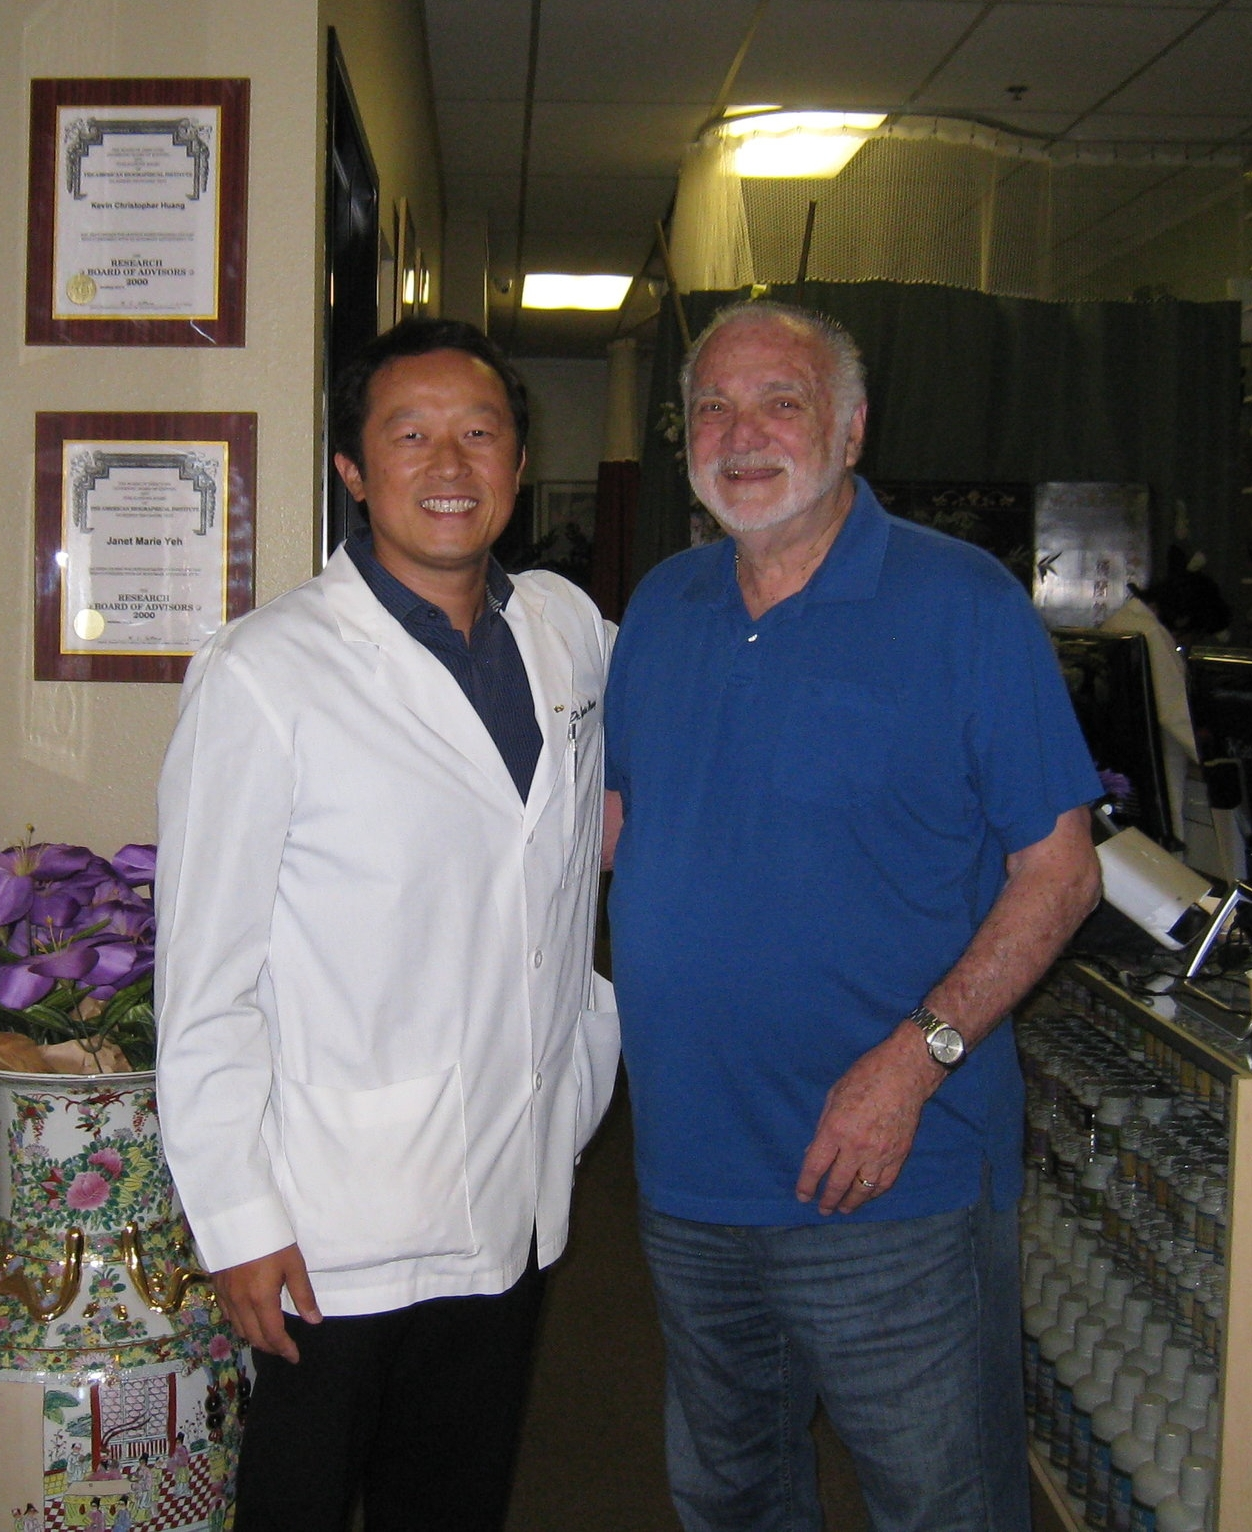 I WOULD REFER EVERYONE AND ANYONE BECAUSE OF THE RESULTS   SHINGLES PAIN AND NUMBNESS WAS CONSTANT   ACUPUNCTURE, HERBS, NUTRITION    I did whatever Dr. Huang told me to do and it resolved the pain and numbness. They accomplished what medical doctors couldn't and I'm satisfied with the results. I started making progress within a month.